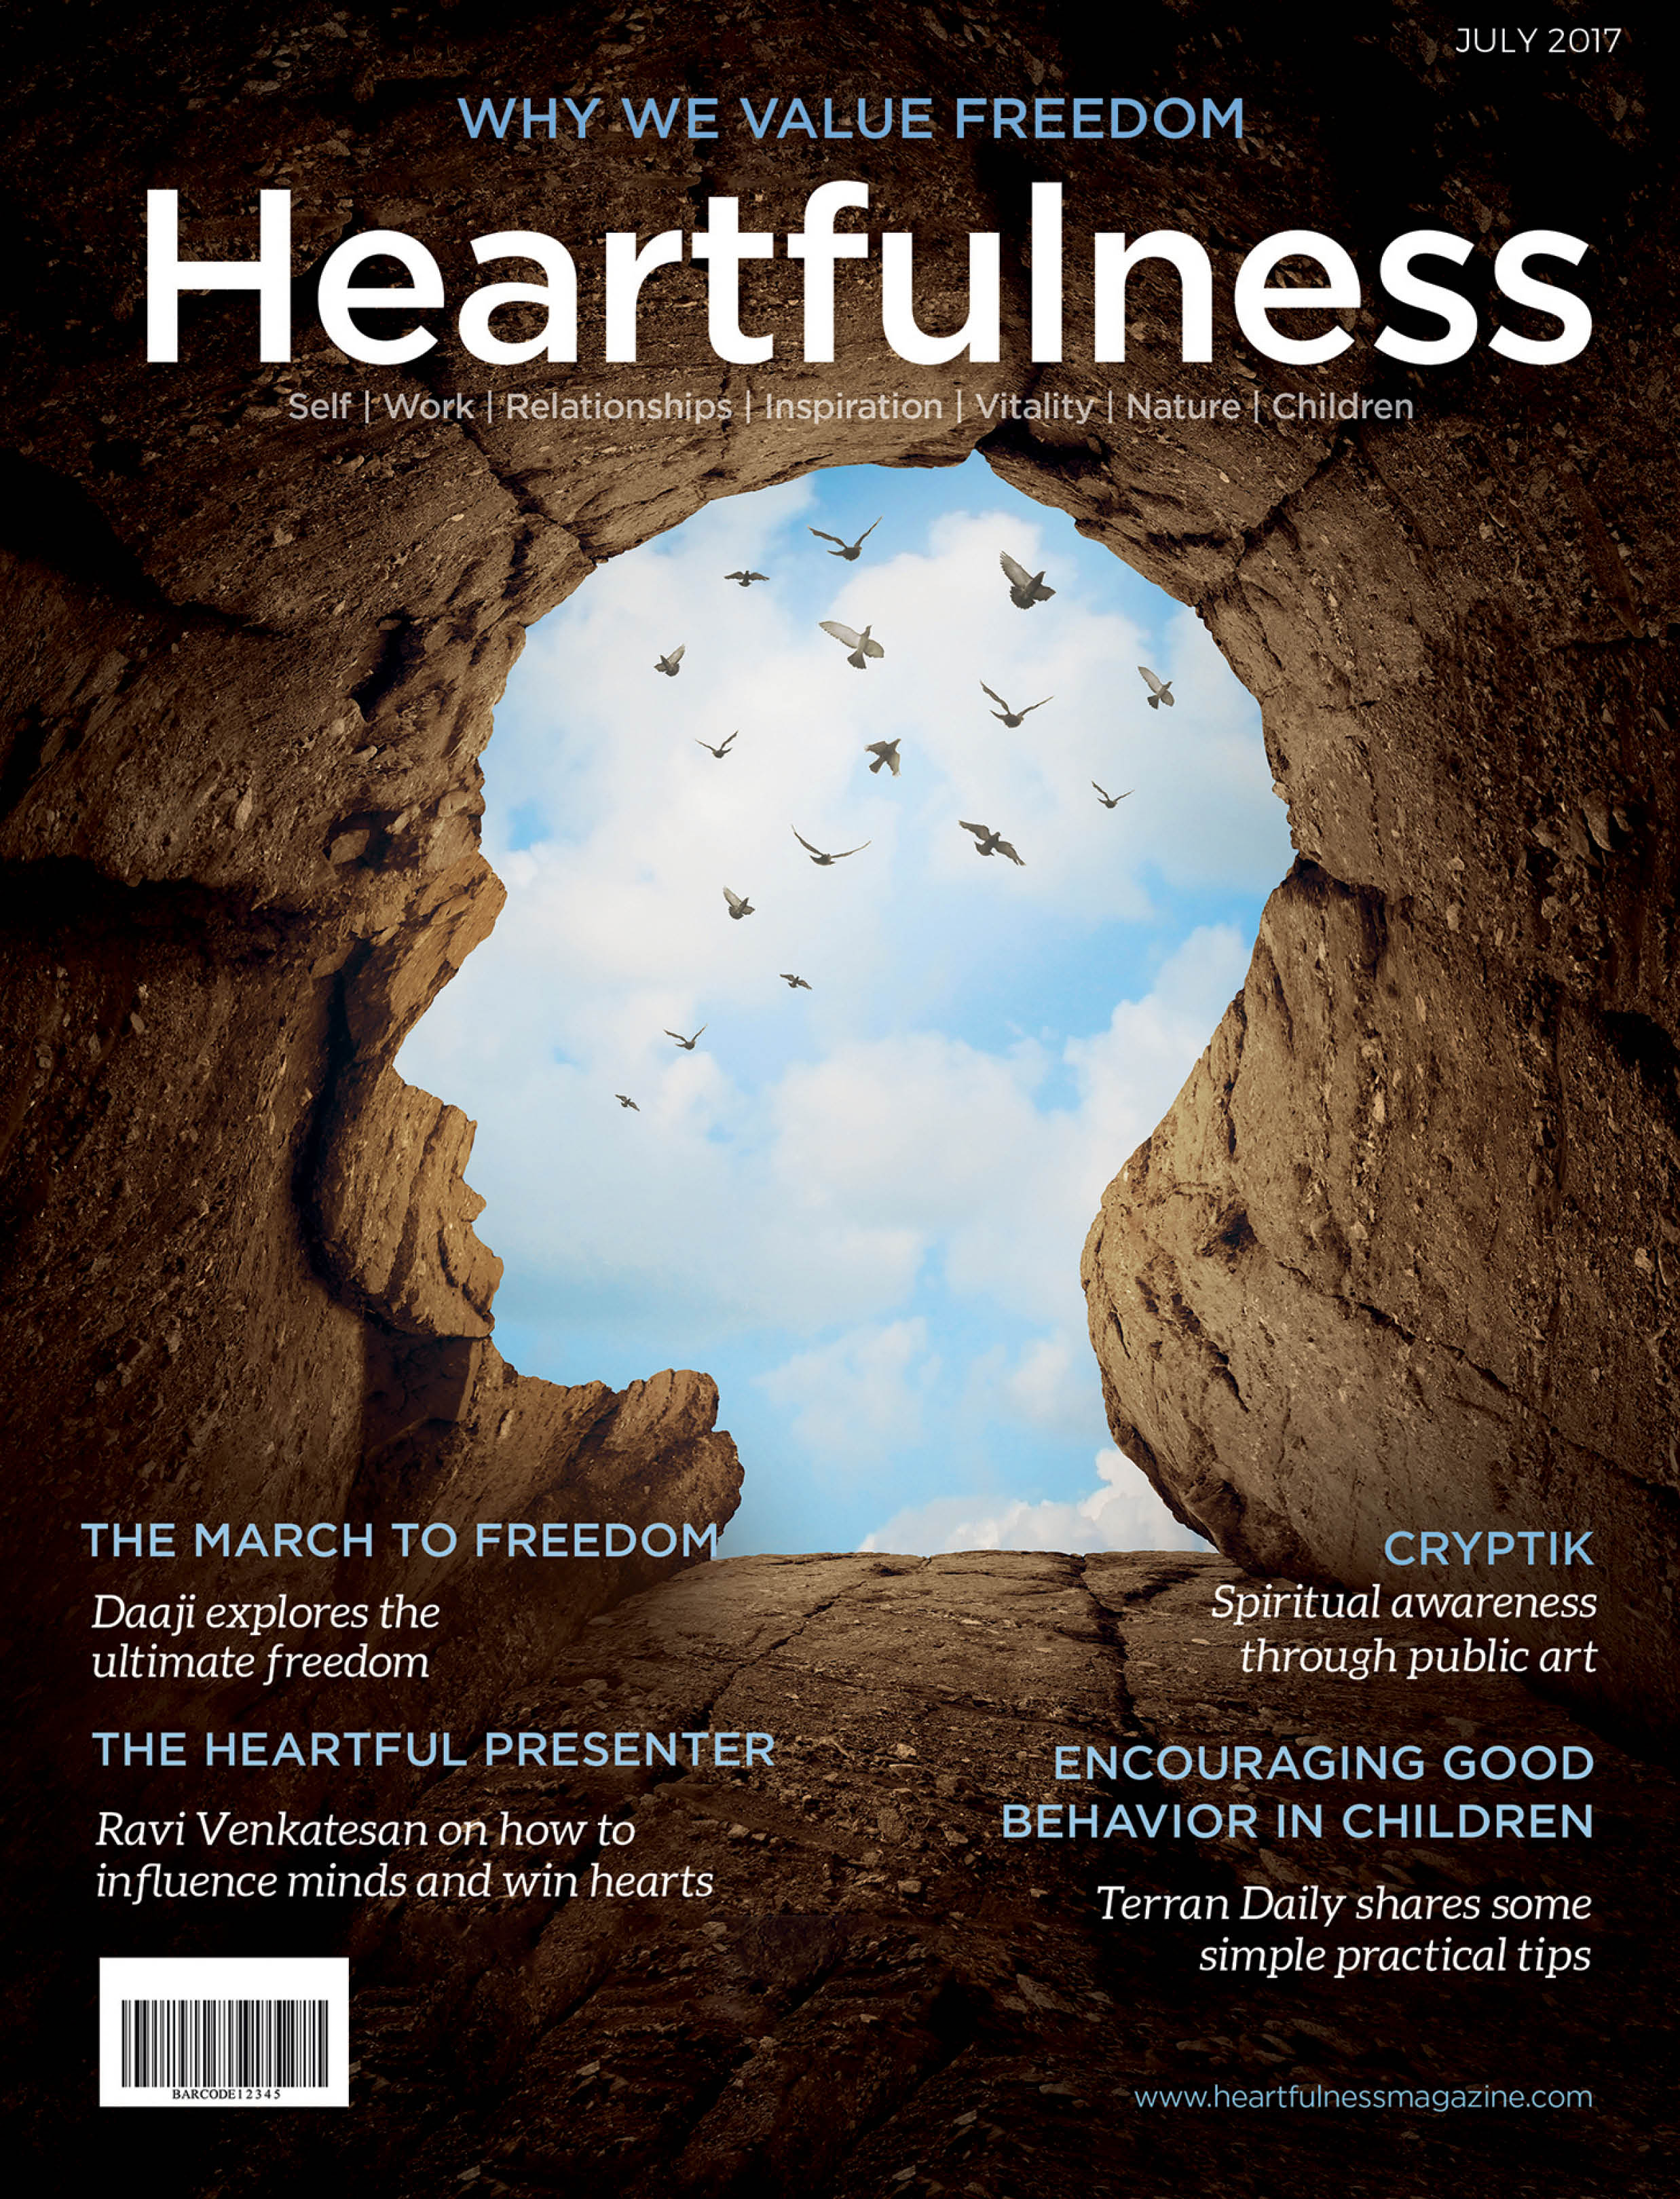 Heartfulness eMagazine - July 2017